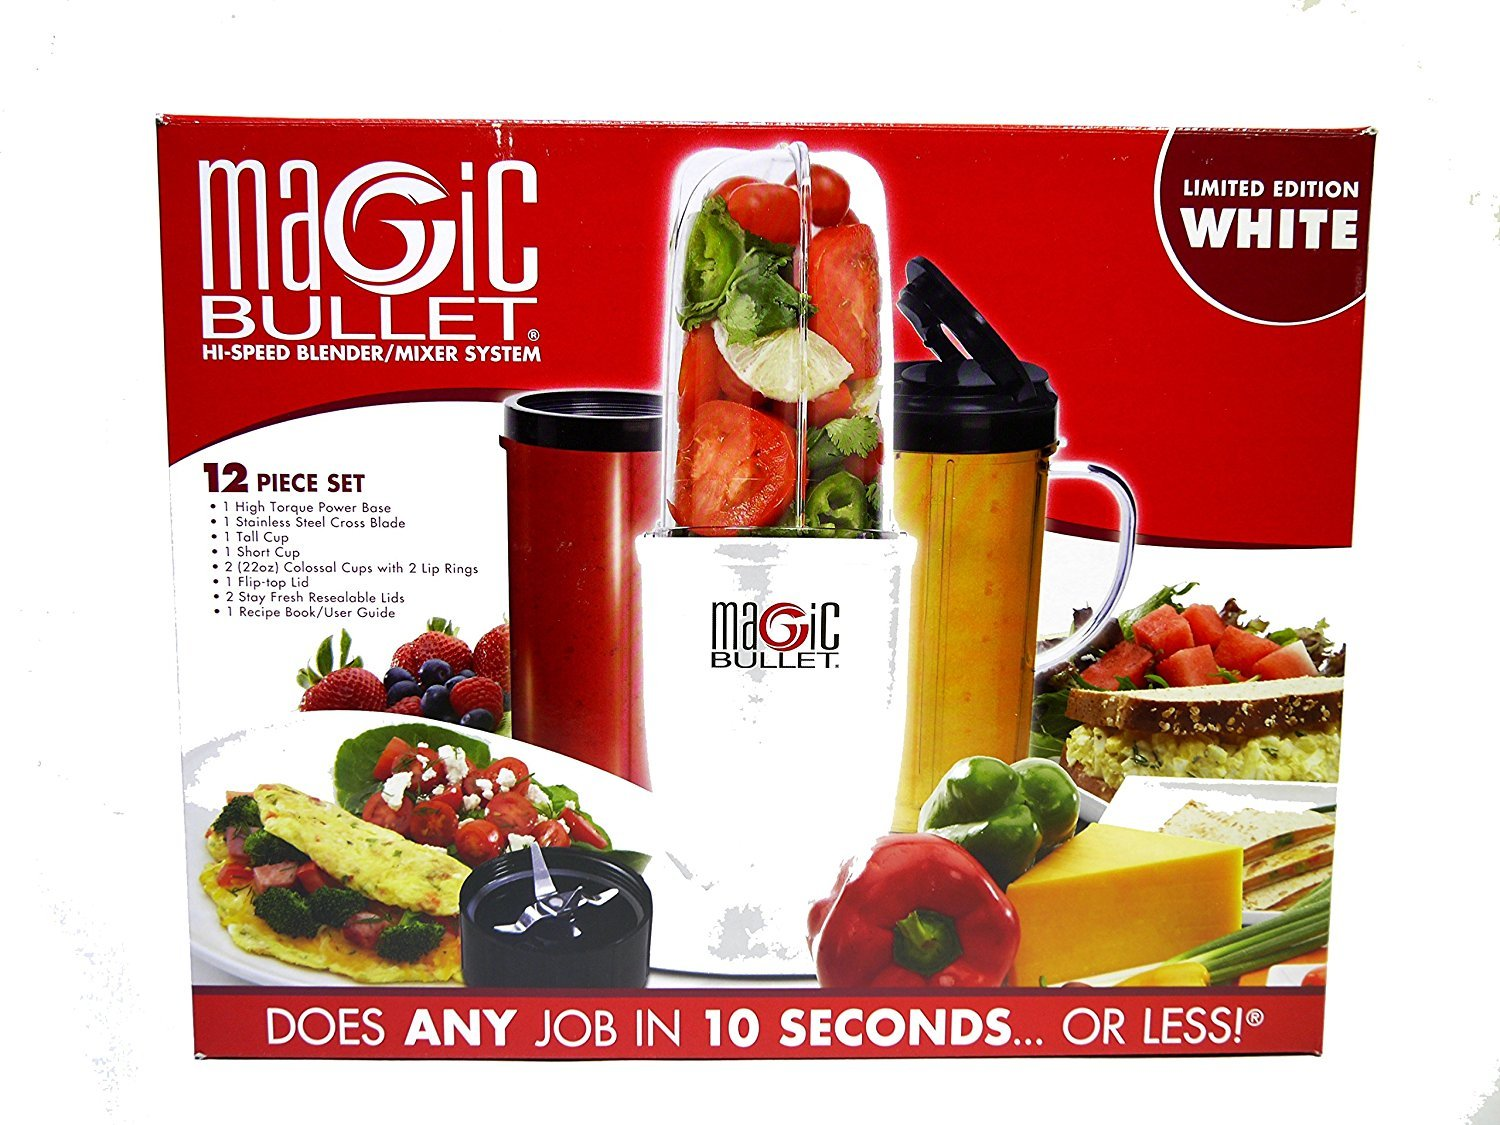 Amazon.com: Magic Bullet Nutribullet Pro 900 Blender/Mixer (15 Piece Set): Electric Personal Size Blenders: Kitchen & Dining